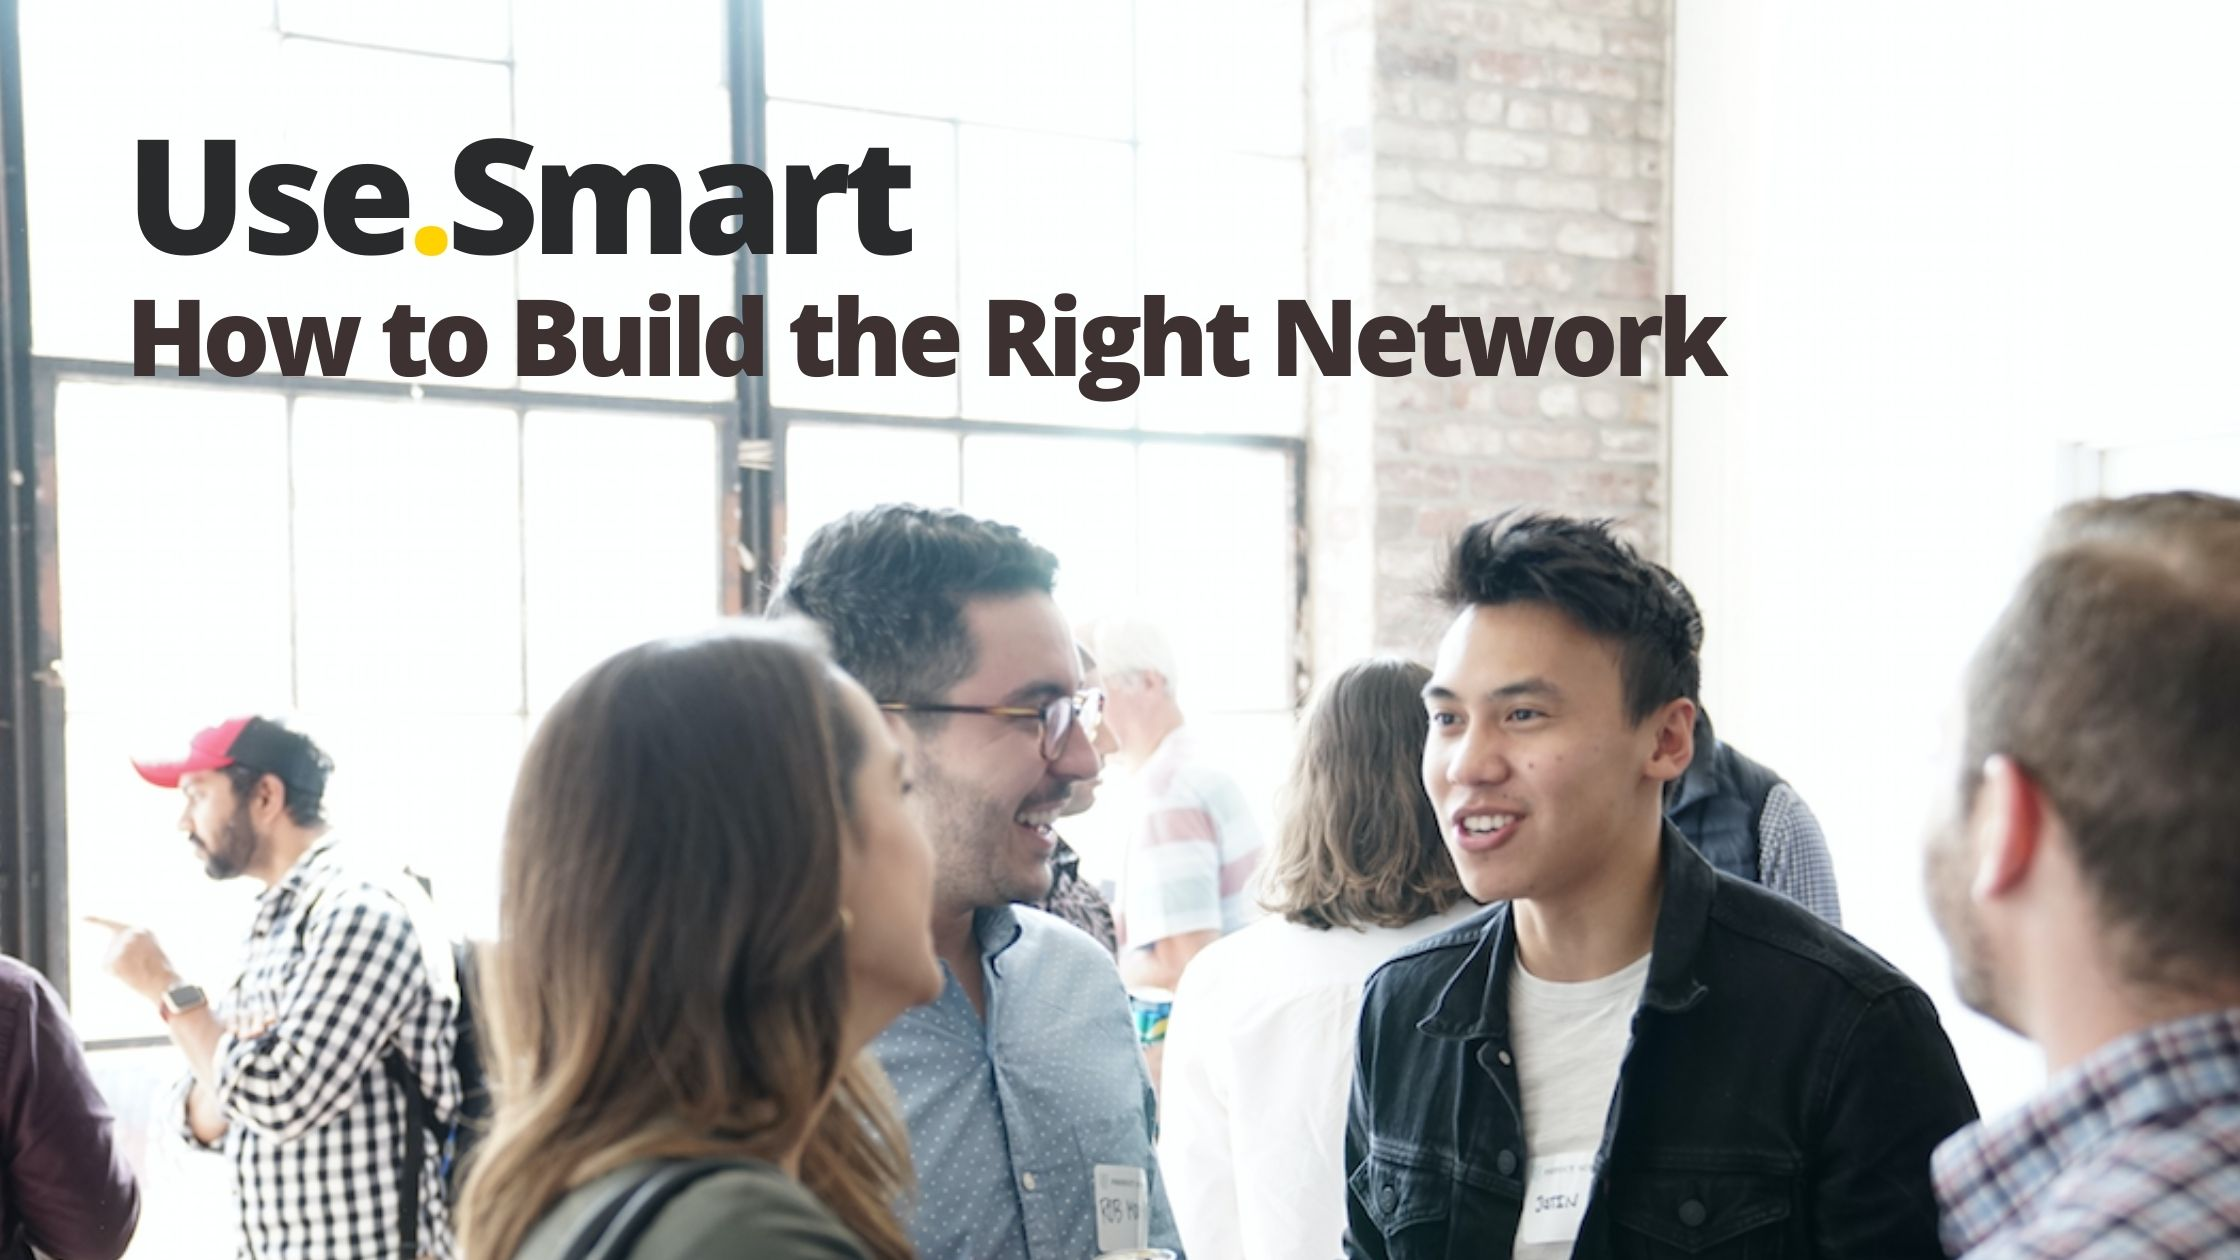 Building the right network